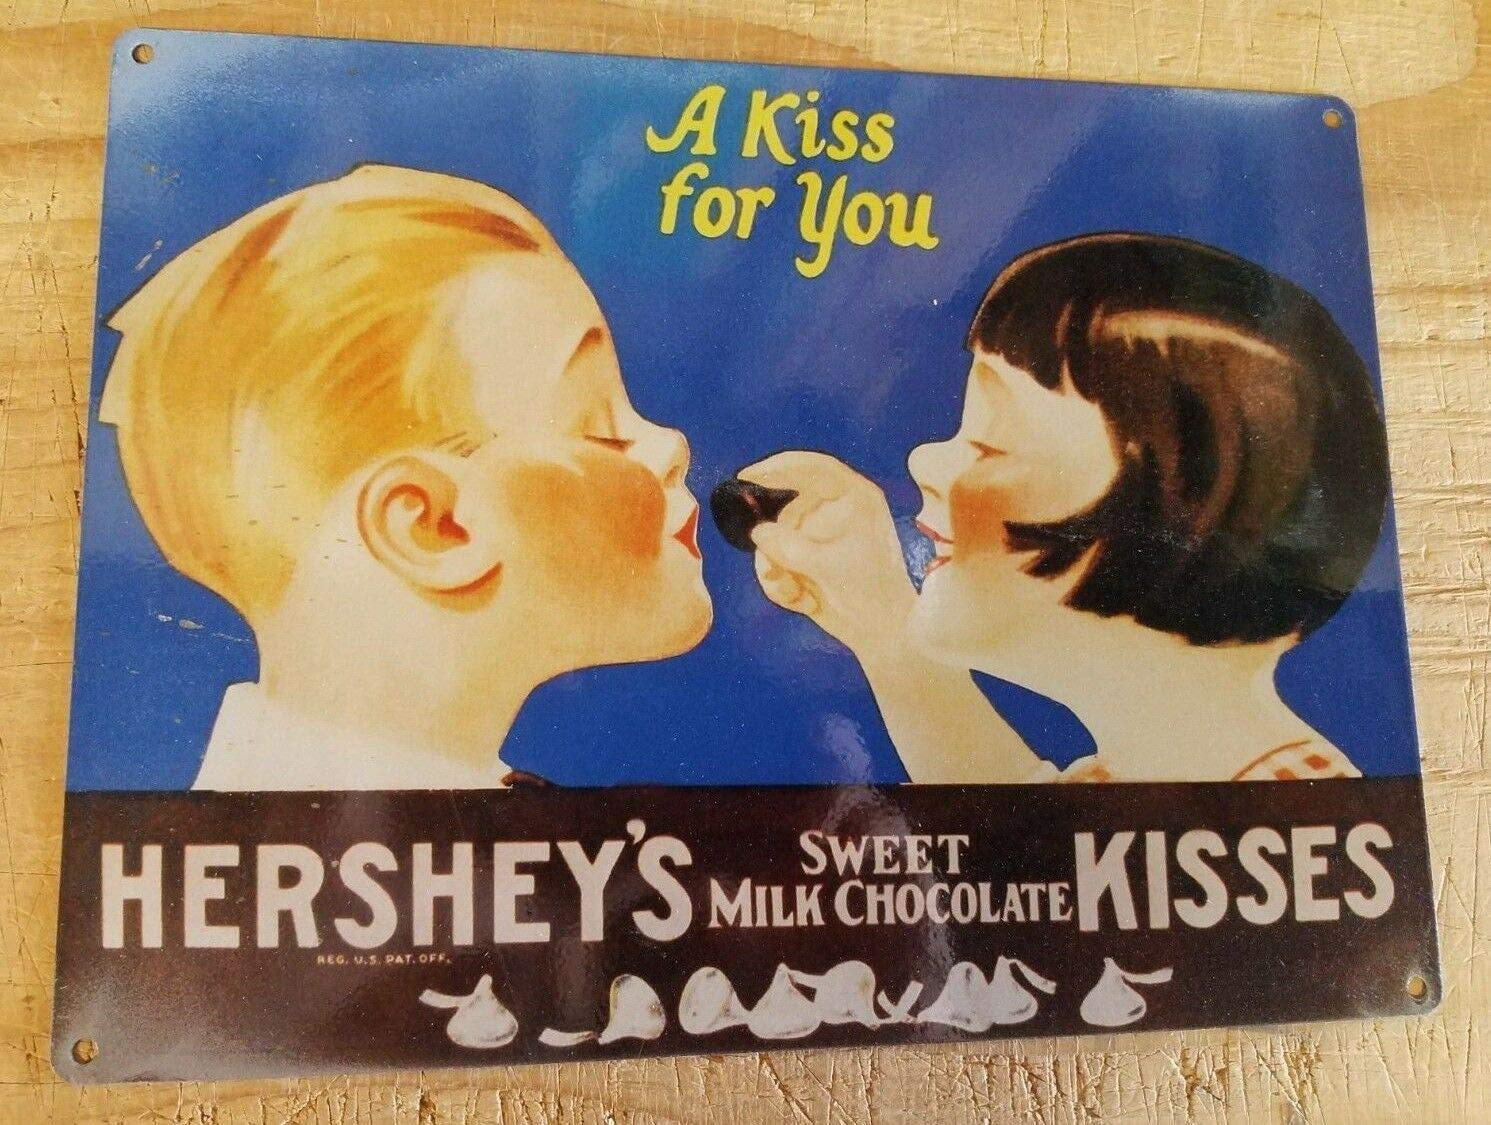 Hersheys A Kiss for You Vintage Poster Decorative Steel Sign Reproduction Aluminum Metal Signs Tin Plaques Wall Poster for Garage Man Cave Beer Cafee Bar Pub Club Home Decor 8